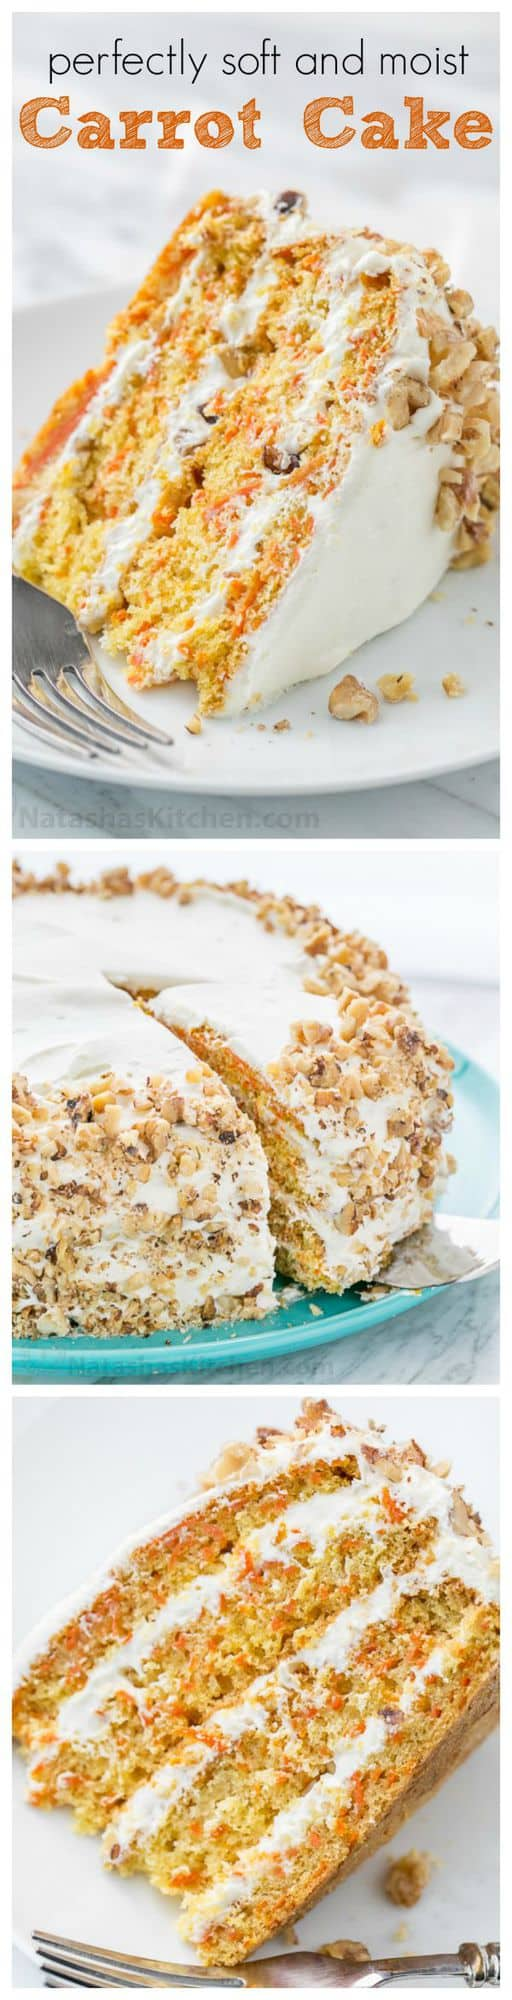 This Classic Carrot Cake recipe has been handed down through generations. Soft, moist, marshmallow-like frosting and not overly sweet. YUM! | natashaskitchen.com